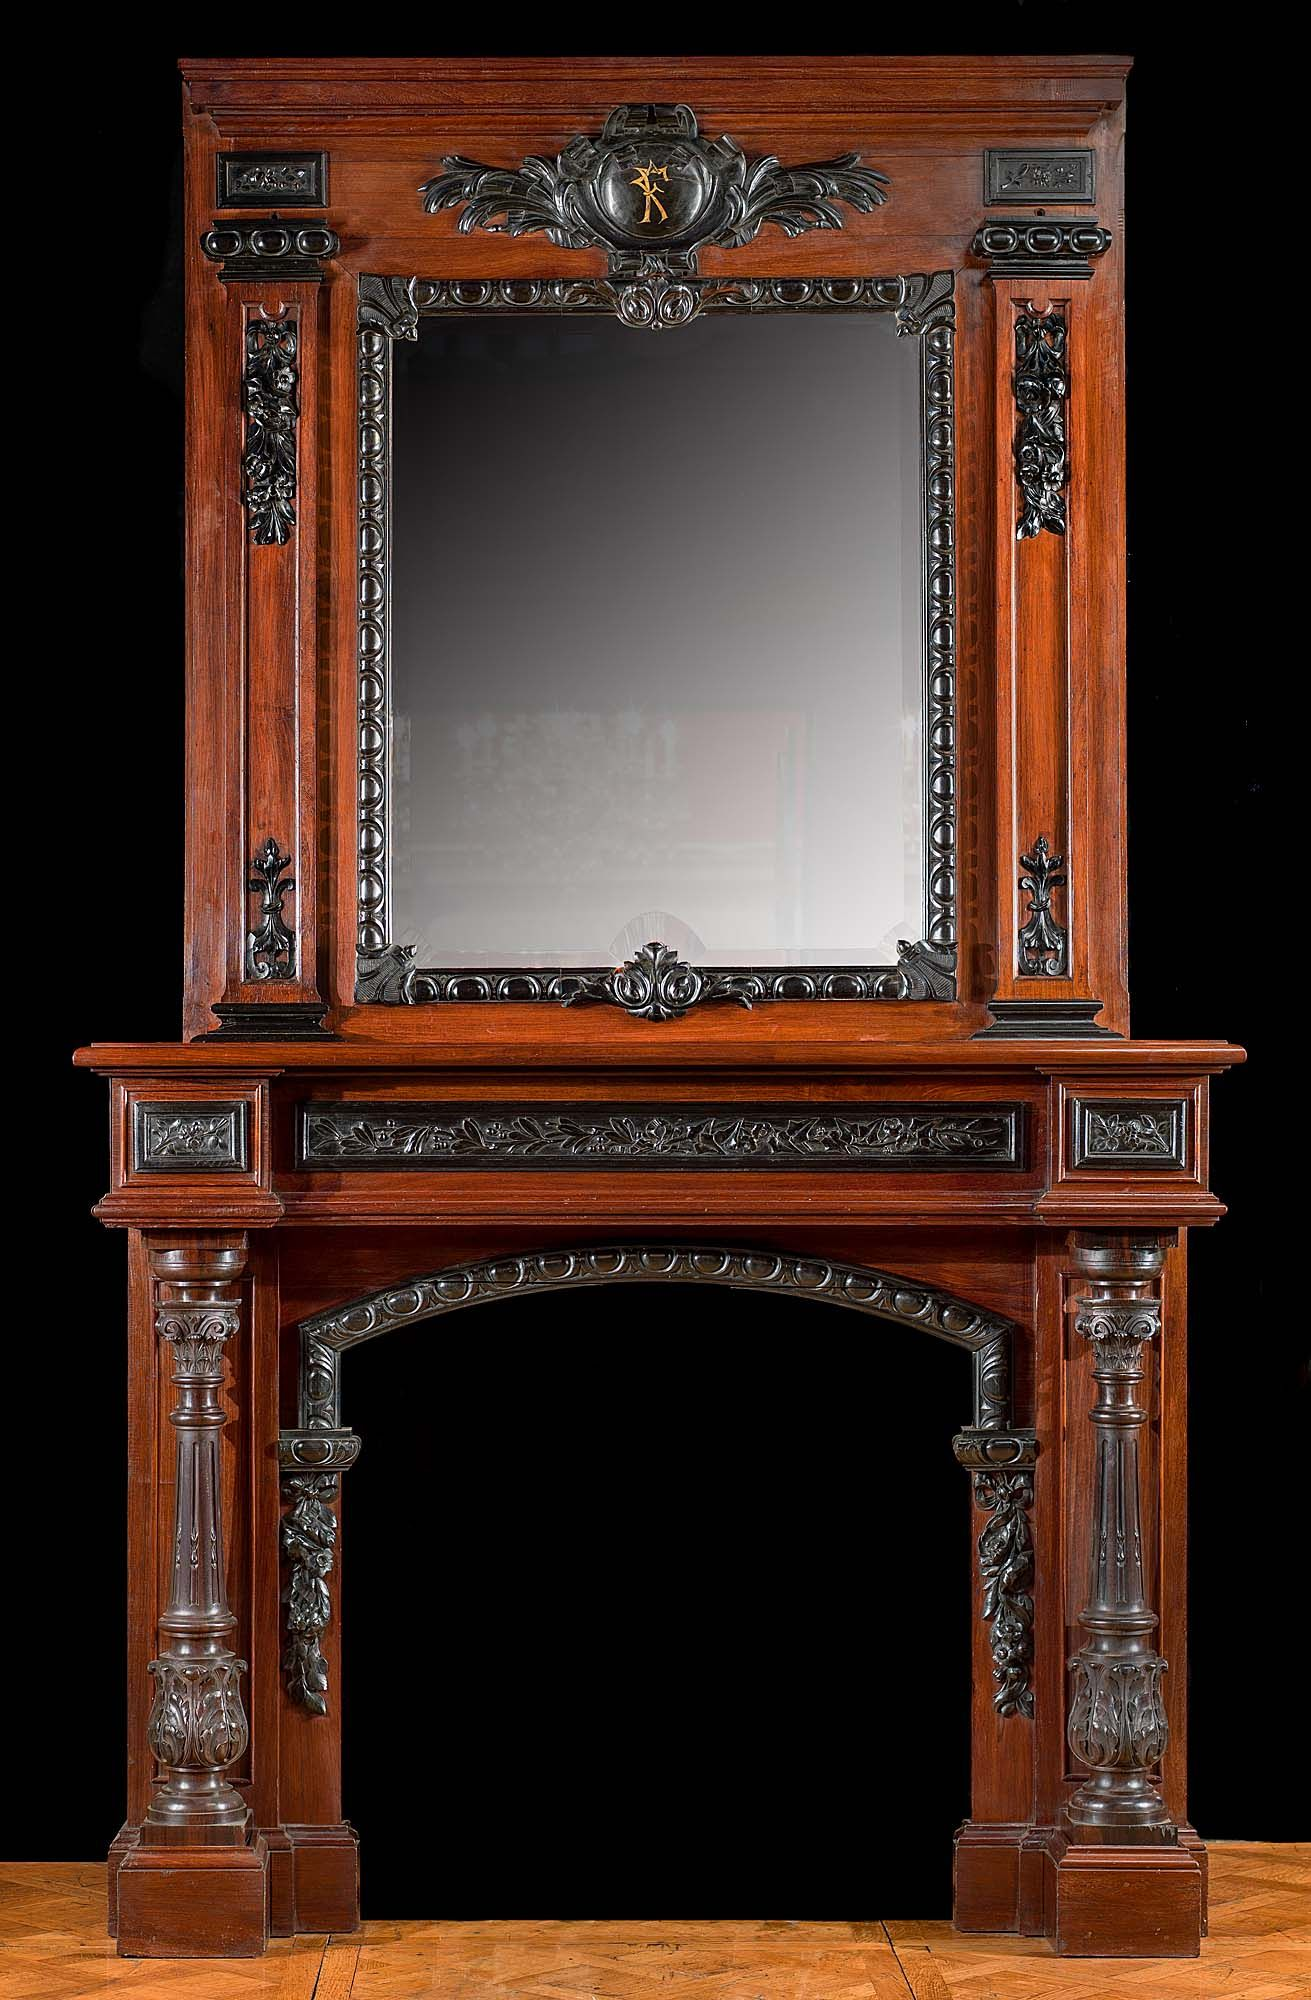 Tall French Baroque Mahogany Amp Ebony Fireplace Mantel